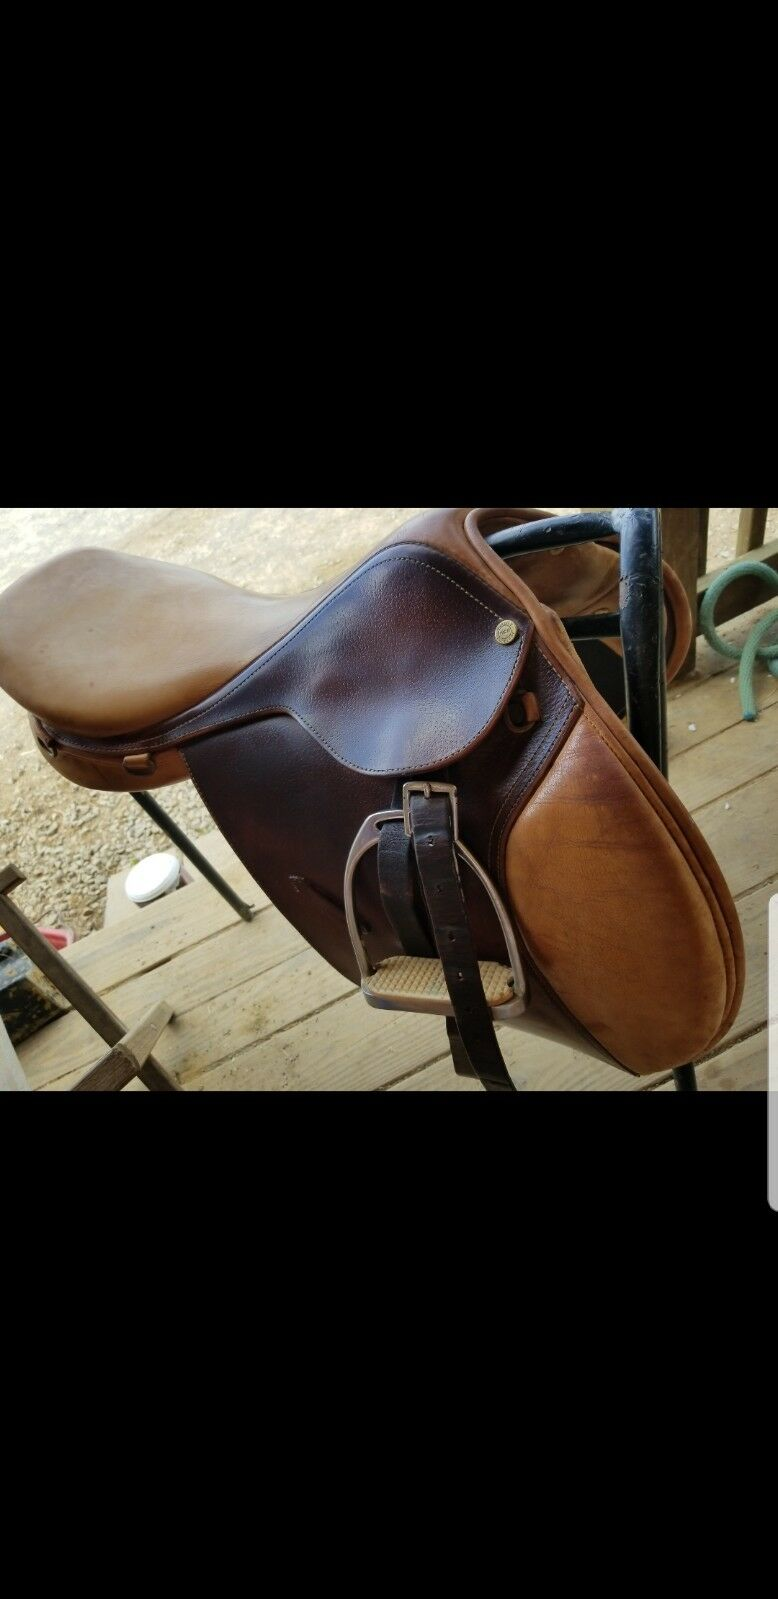 Nice Saddlery Brand 16.5in English Saddle